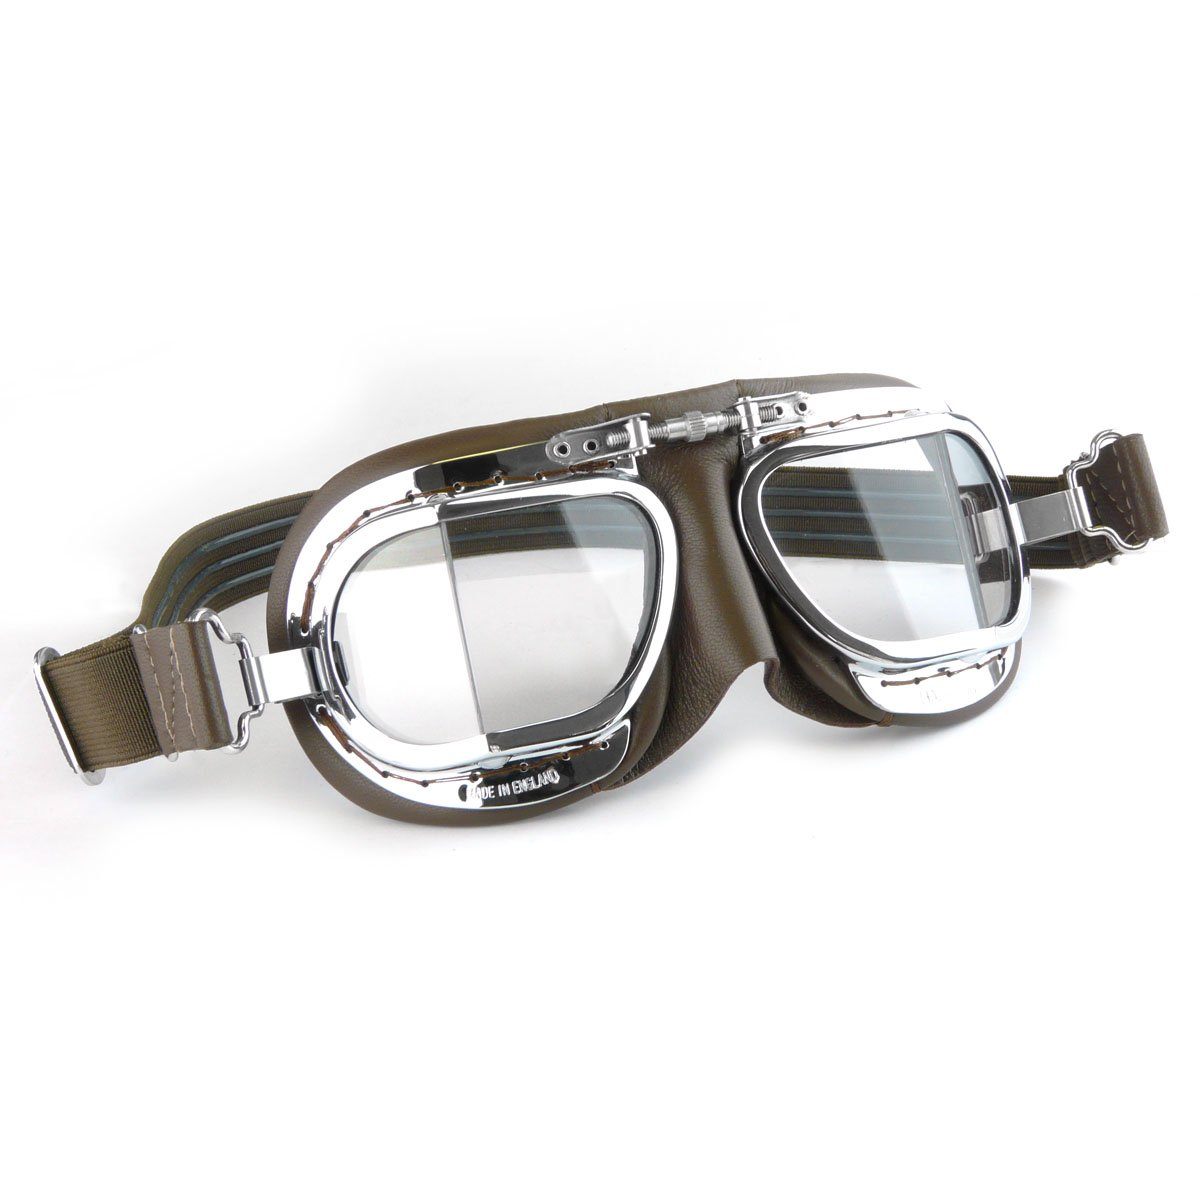 a163f219a23 Halcyon Compact Classic Motorcycle Goggles   Flying Goggles - Brown  Leather  Amazon.co.uk  Car   Motorbike